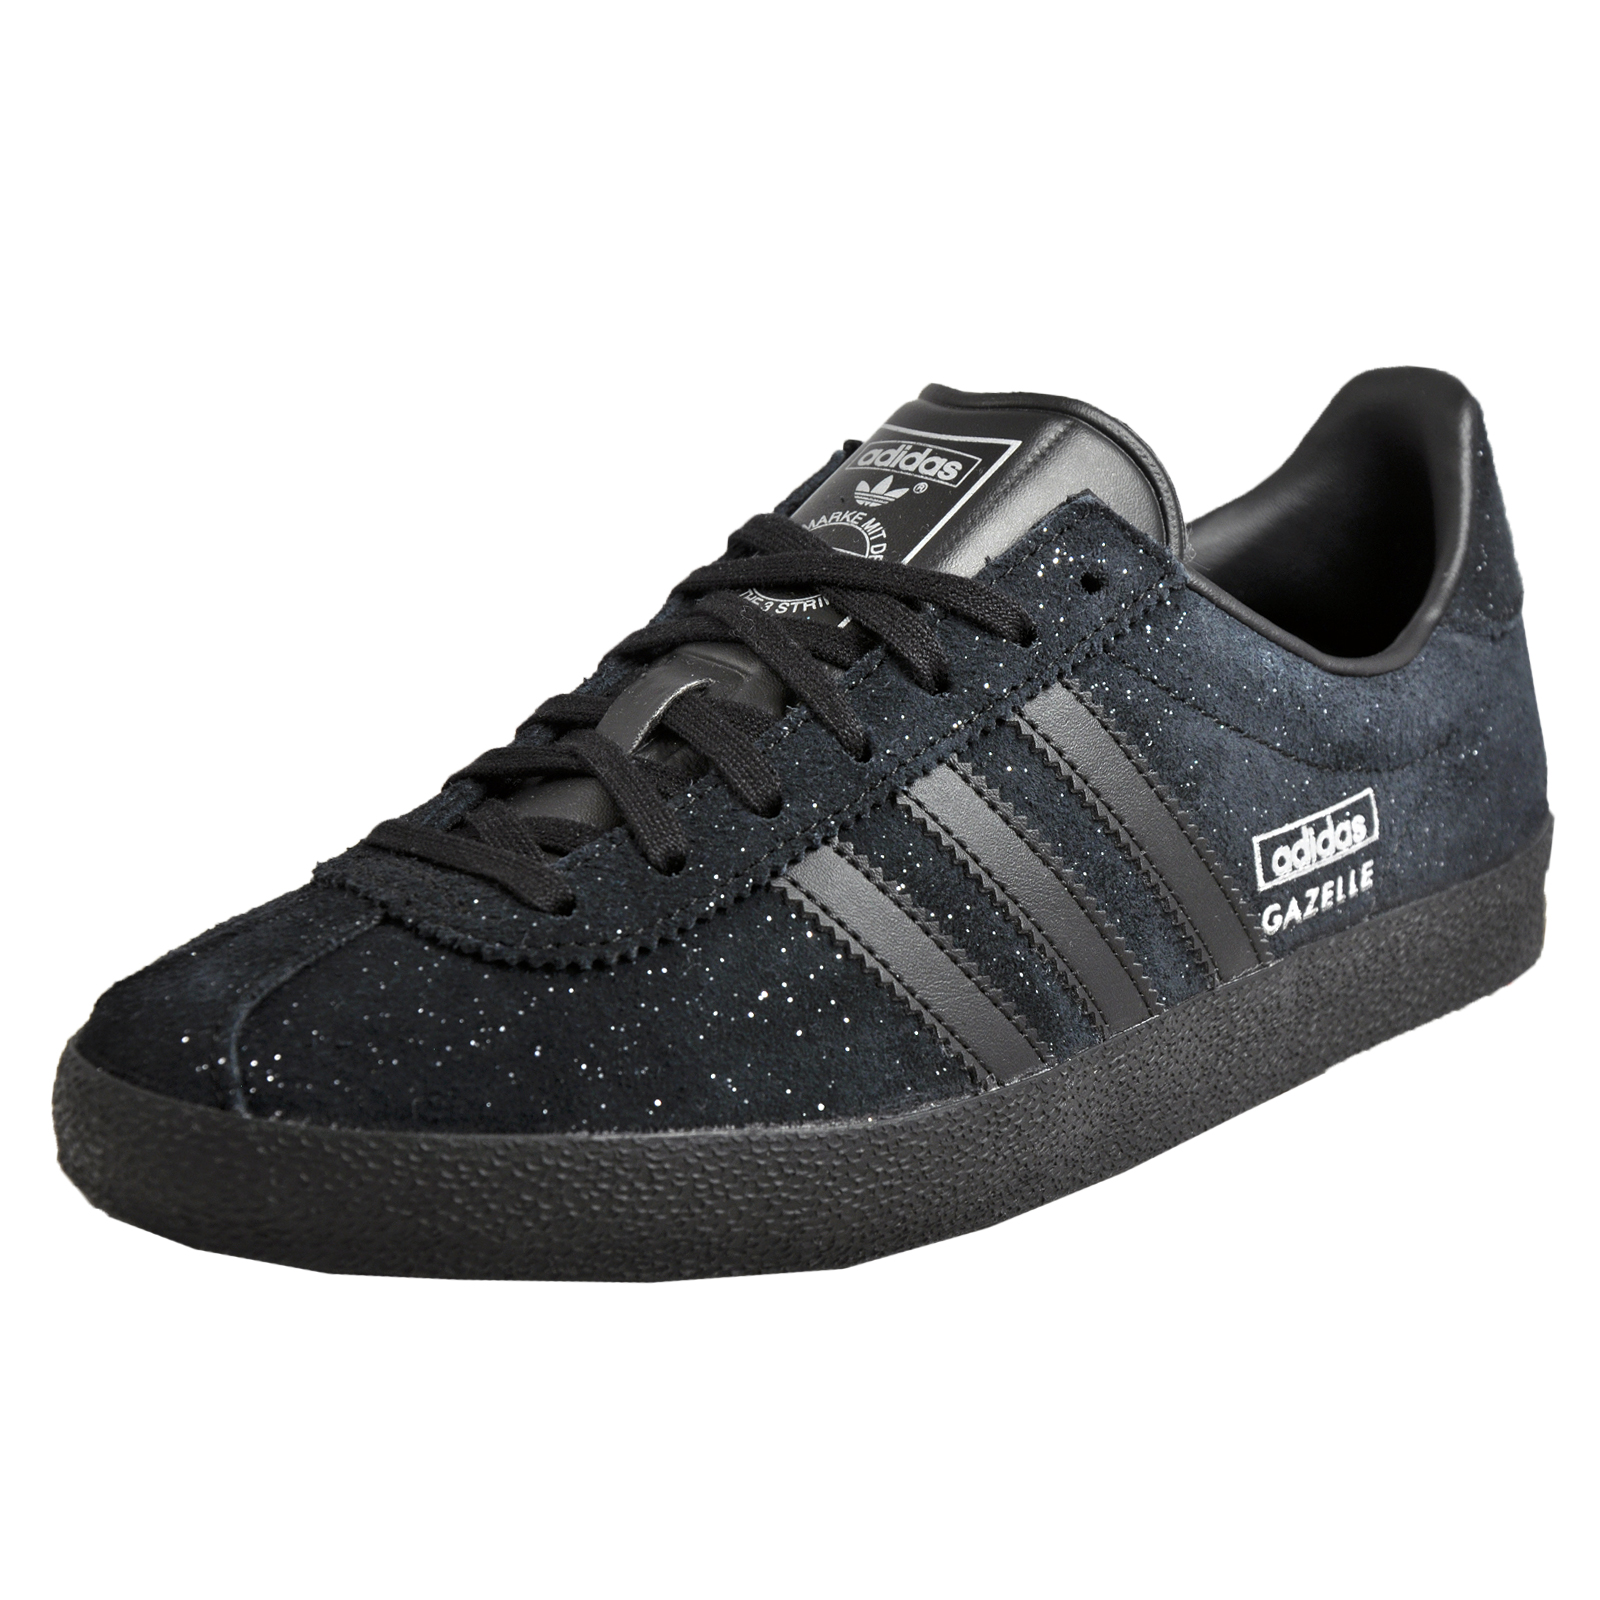 0bdcbb4add28 Buy adidas gazelle limited edition   OFF30% Discounted